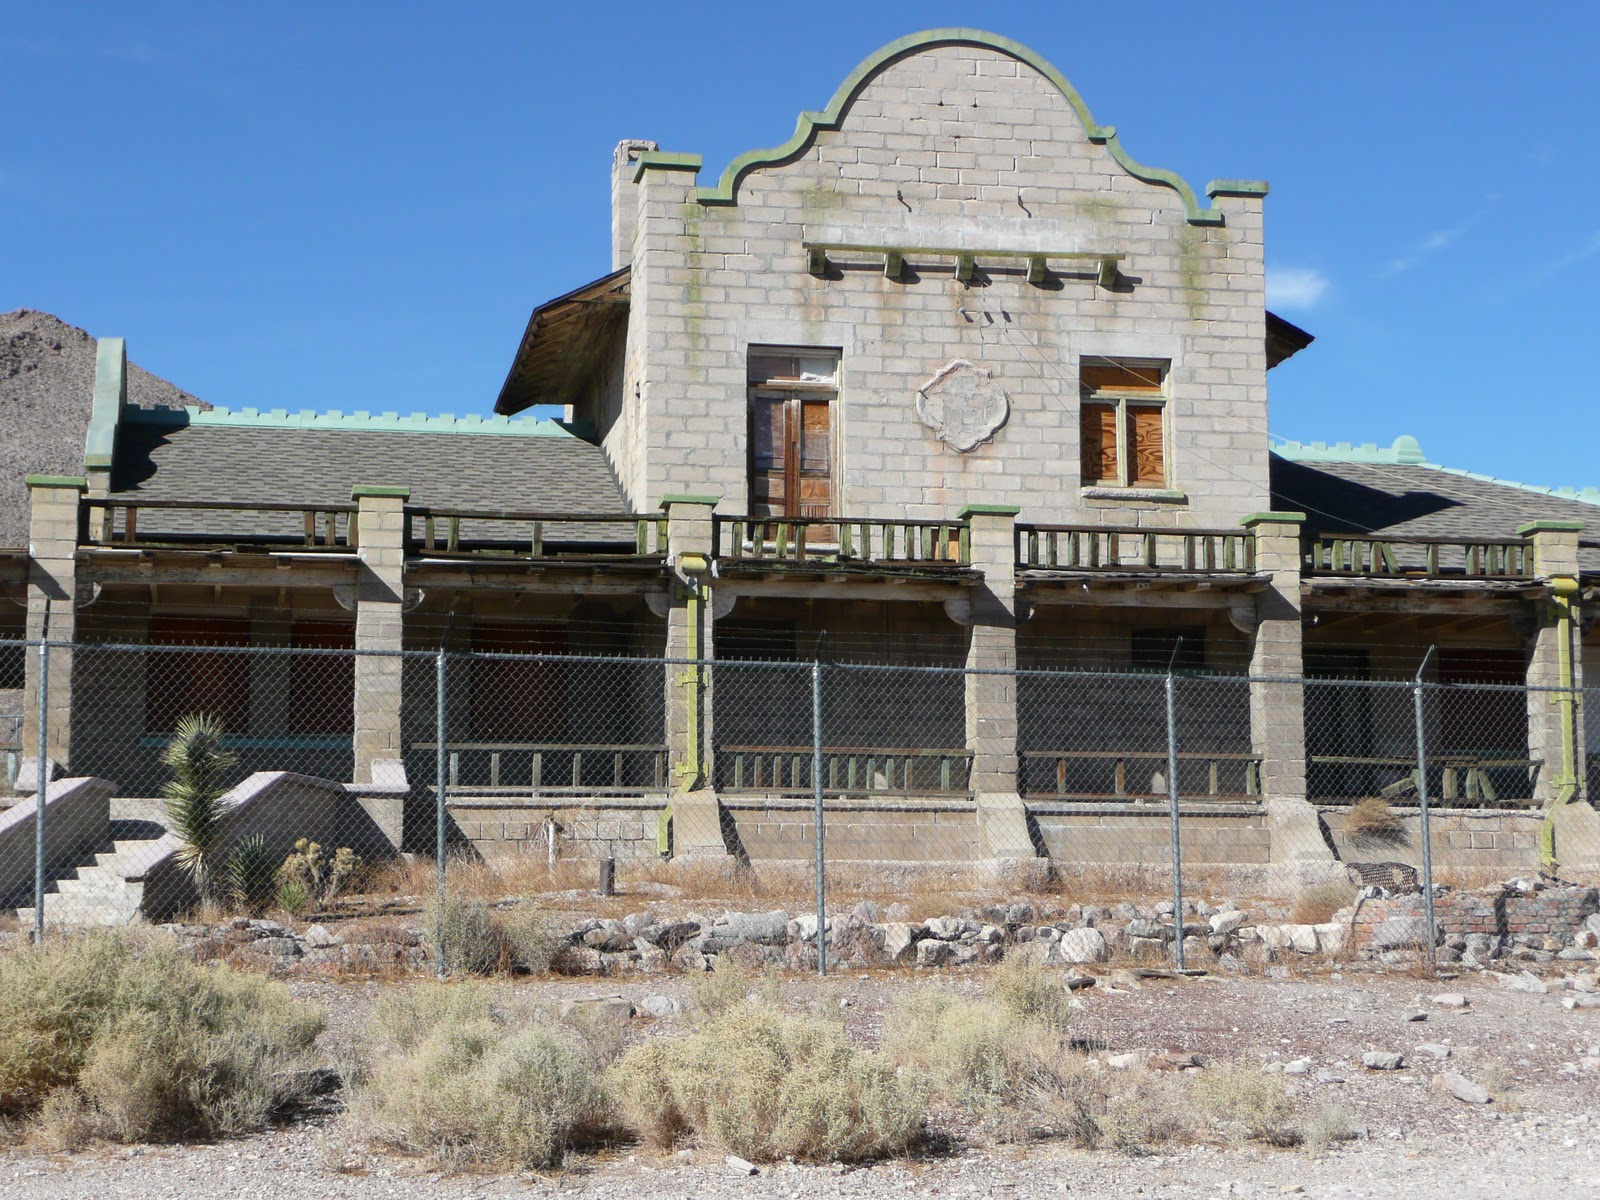 Rhyolite Ghost Town: A Crumbling City Near Death Valley ... |Rhyolite Ghost Town